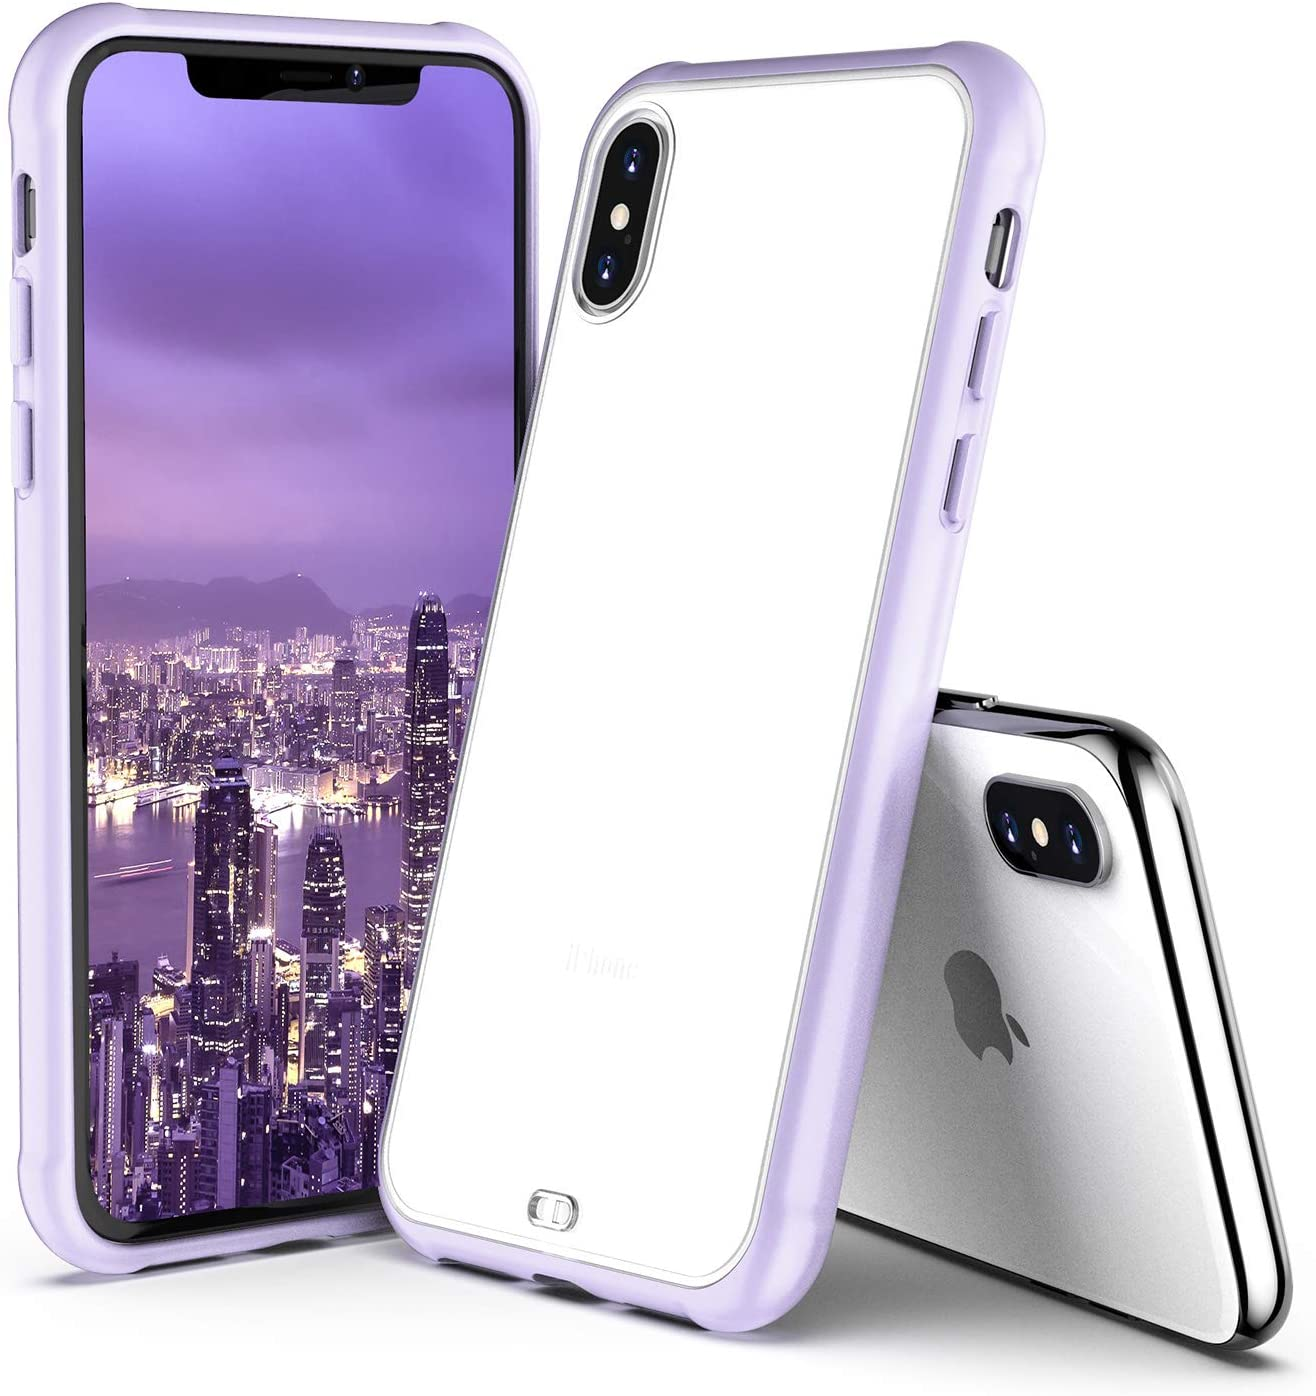 ORIbox iPhone X Case & iPhone Xs Case Clear, Translucent Matte case with Soft Edges, Lightweight, Wireless Charging